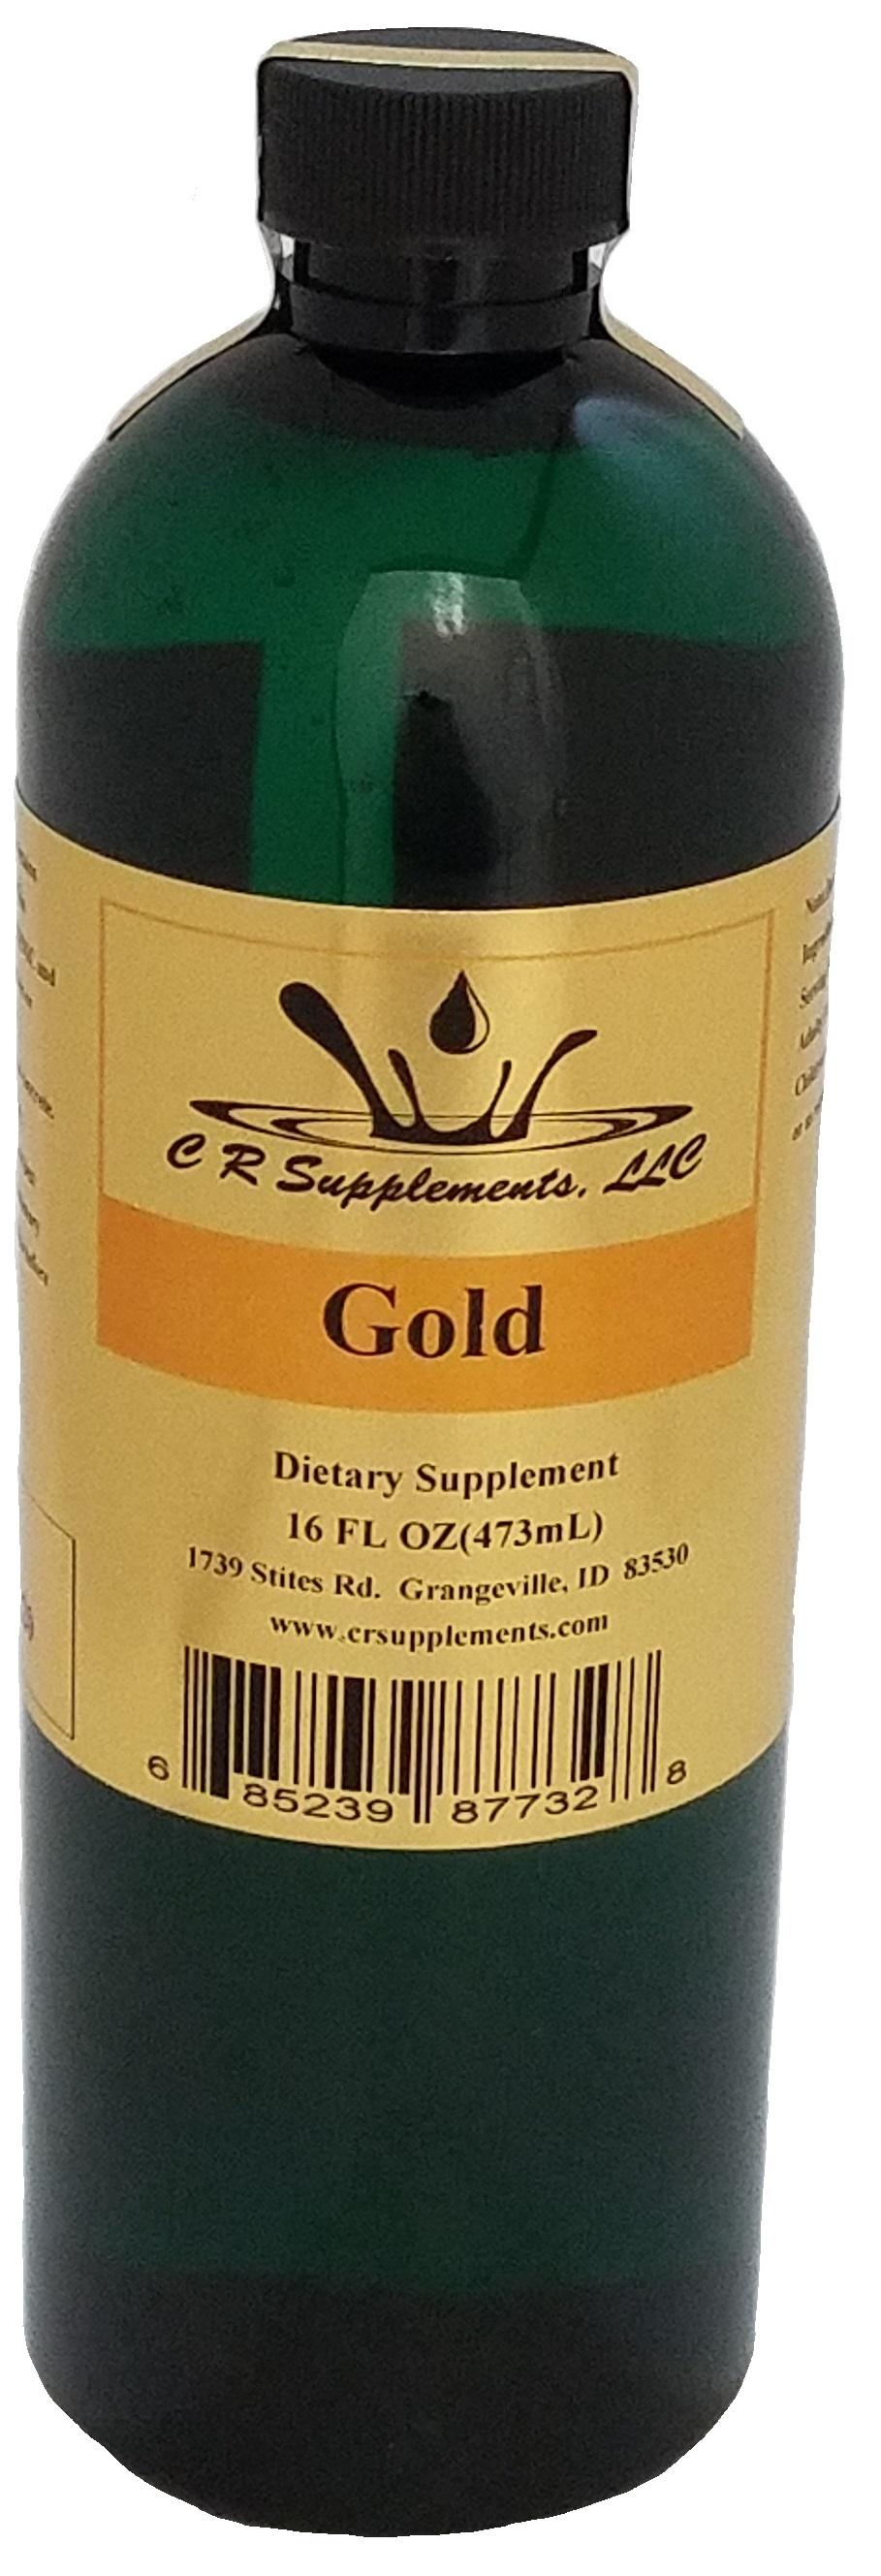 Gold Dietary Supplement By C R Supplements, LLC